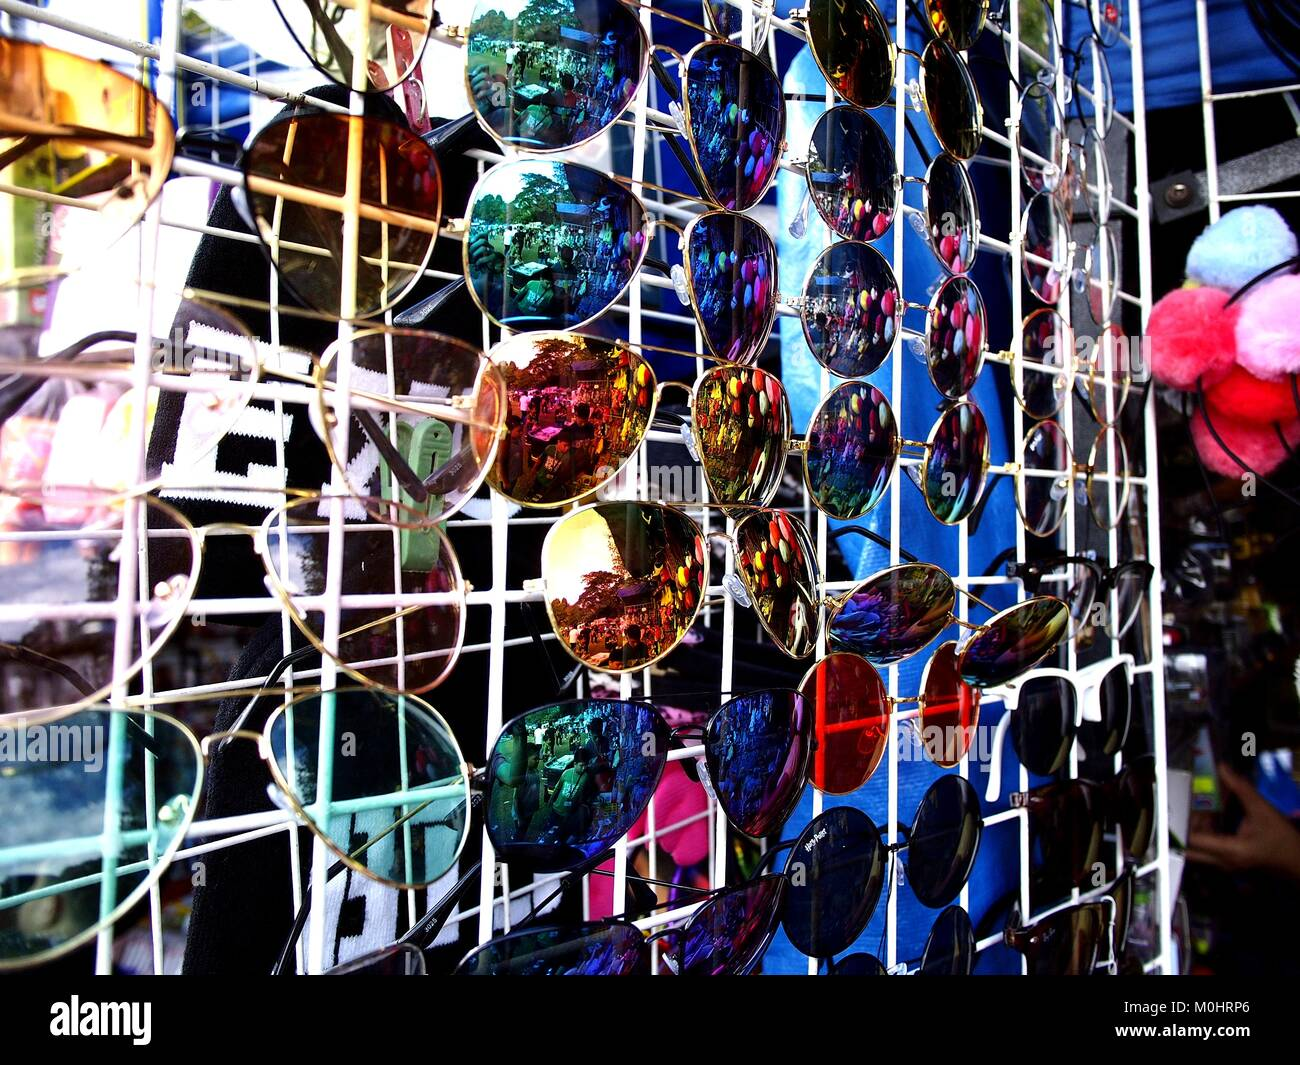 Photo of assorted eyewear on display at a bazaar store - Stock Image